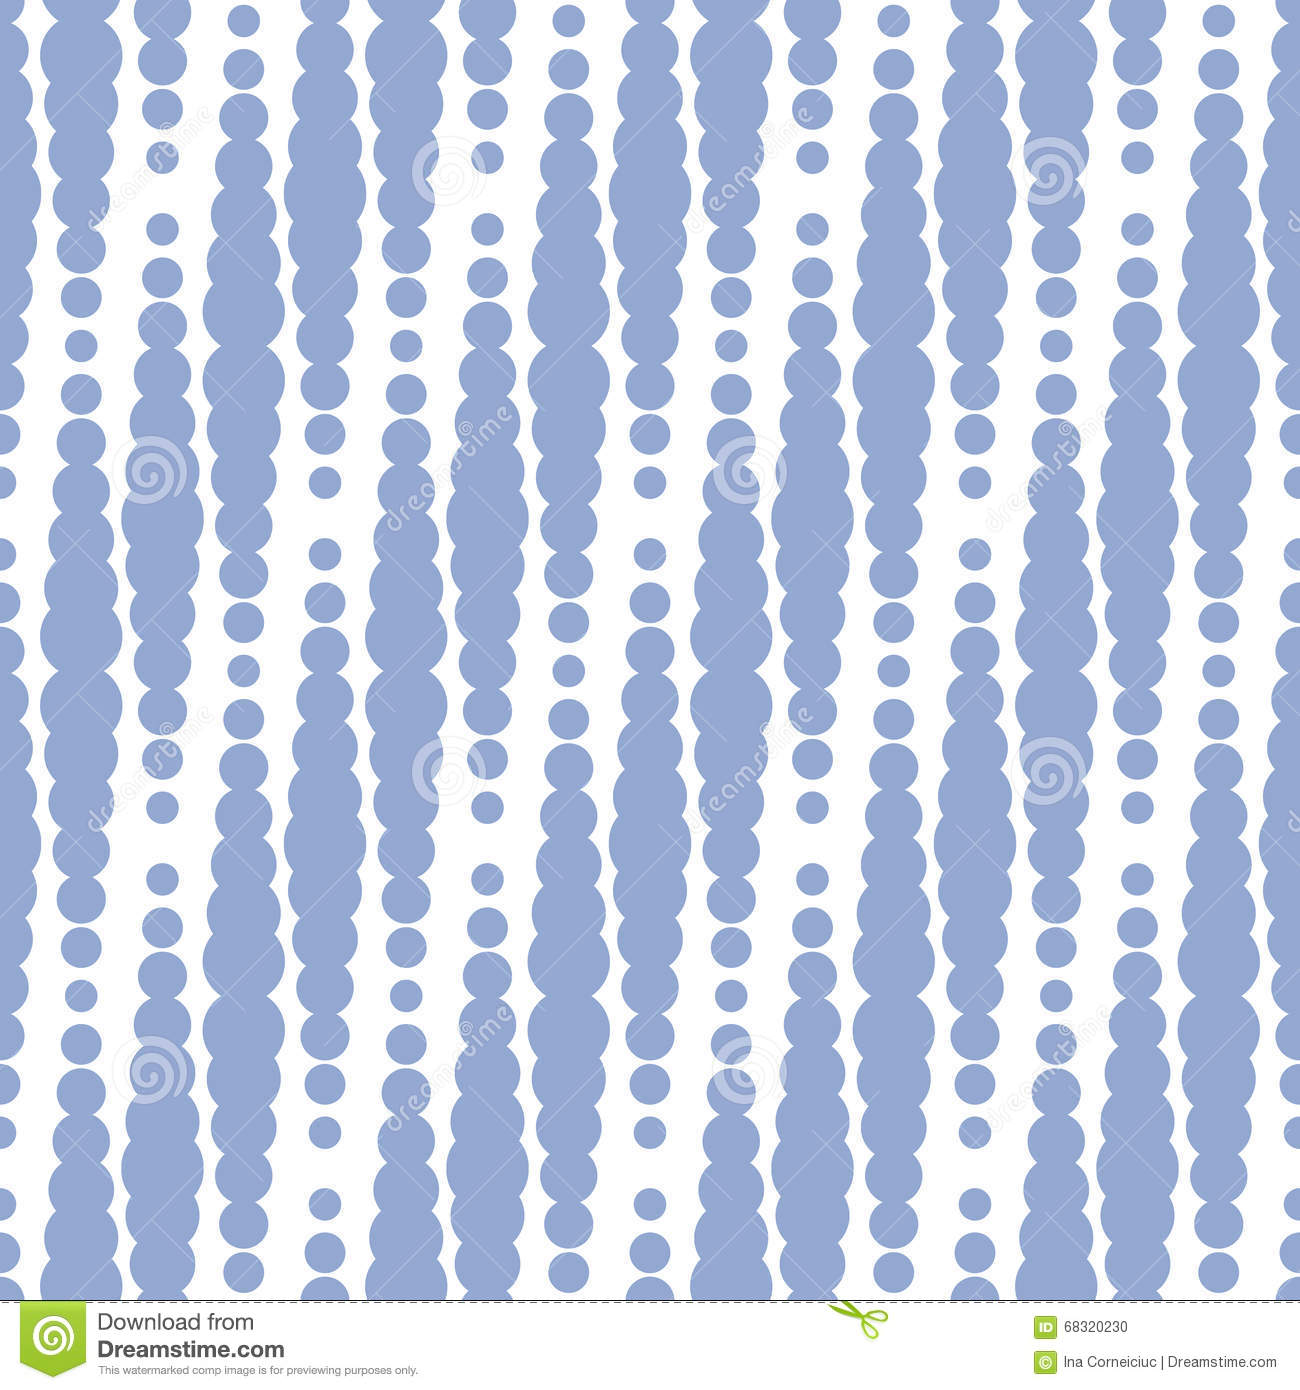 Pantone Color 2016 Geometric Seamless Pattern In Pantone Color Of The Year 2016